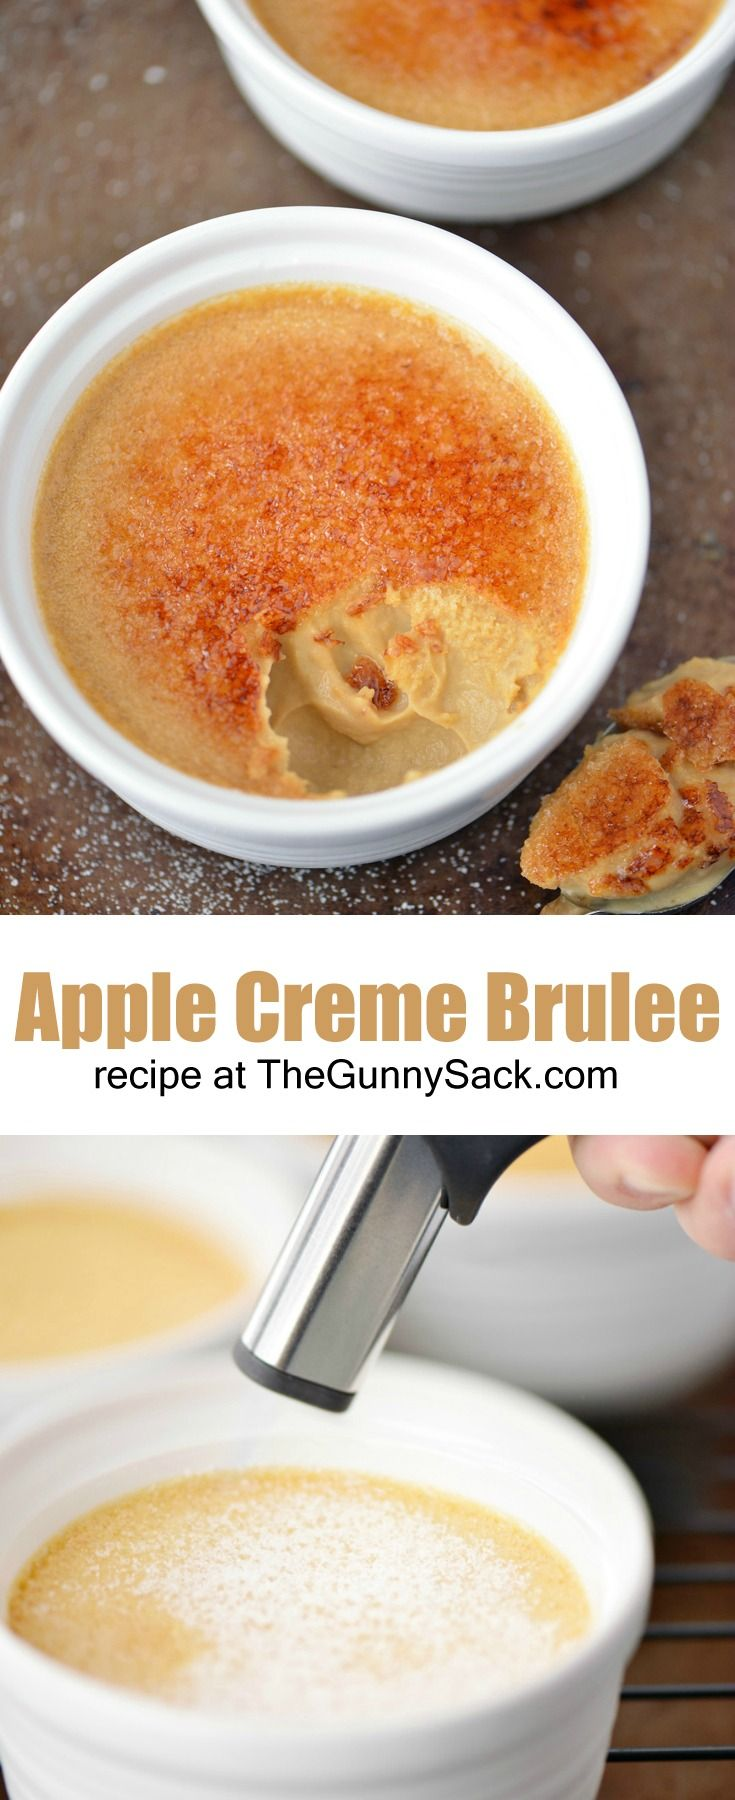 Apple Creme Brulee - With a crunchy, caramelized topping! This is an EASY, yet impressive dessert to serve dinner guests.